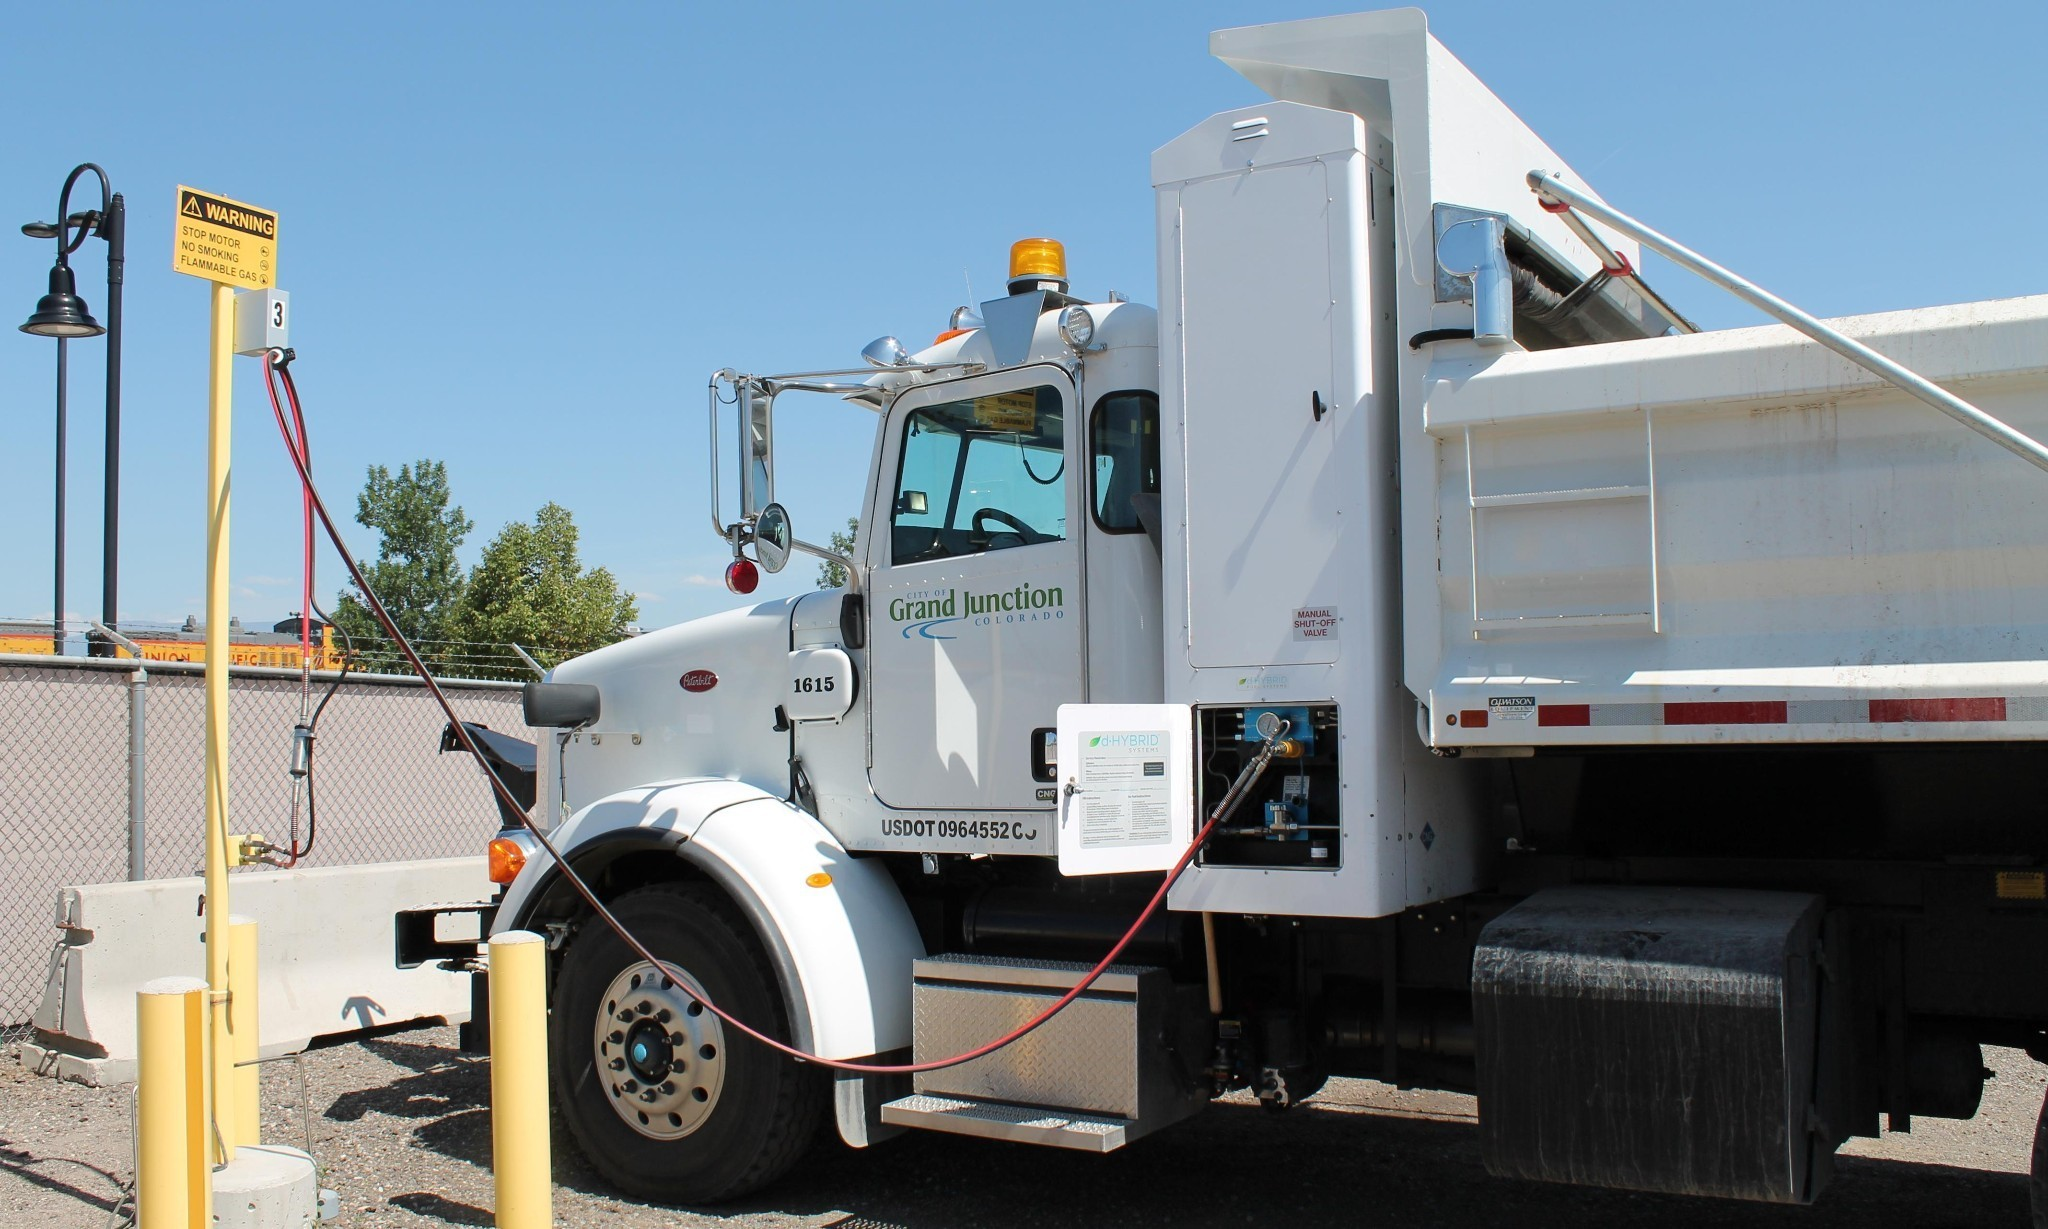 Power to the poop: one Colorado city is using human waste to run its vehicles